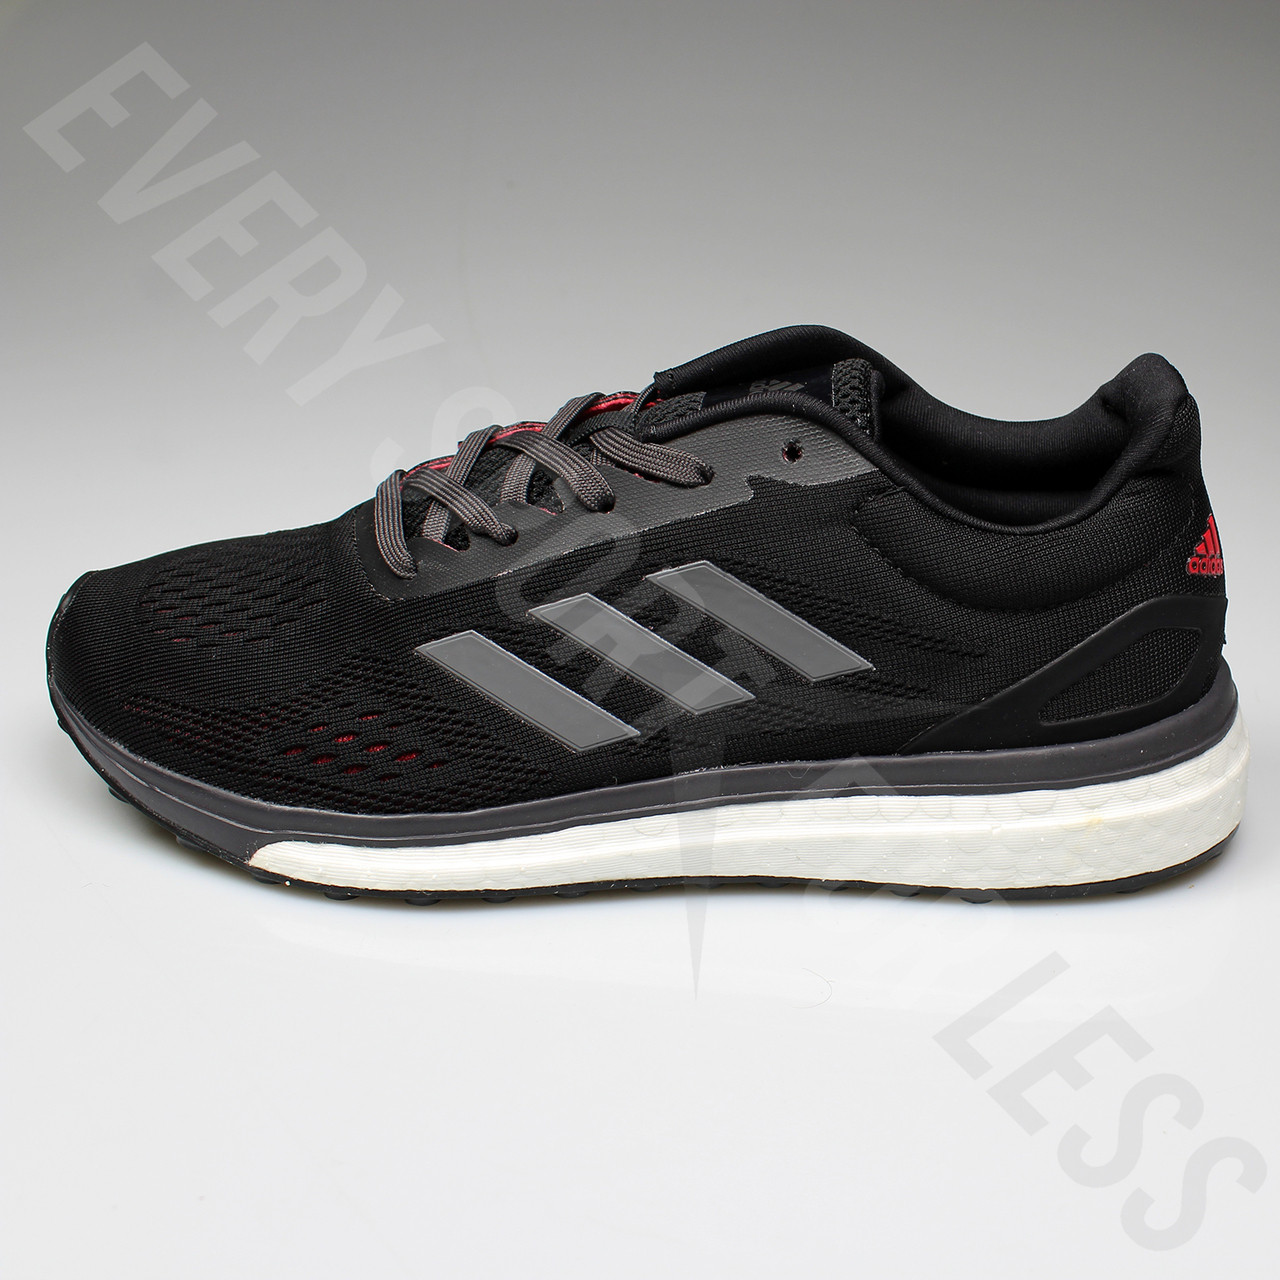 brand new e2f26 79828 ... Adidas Sonic Drive Women s Running Shoes BB3424 - Black, ...